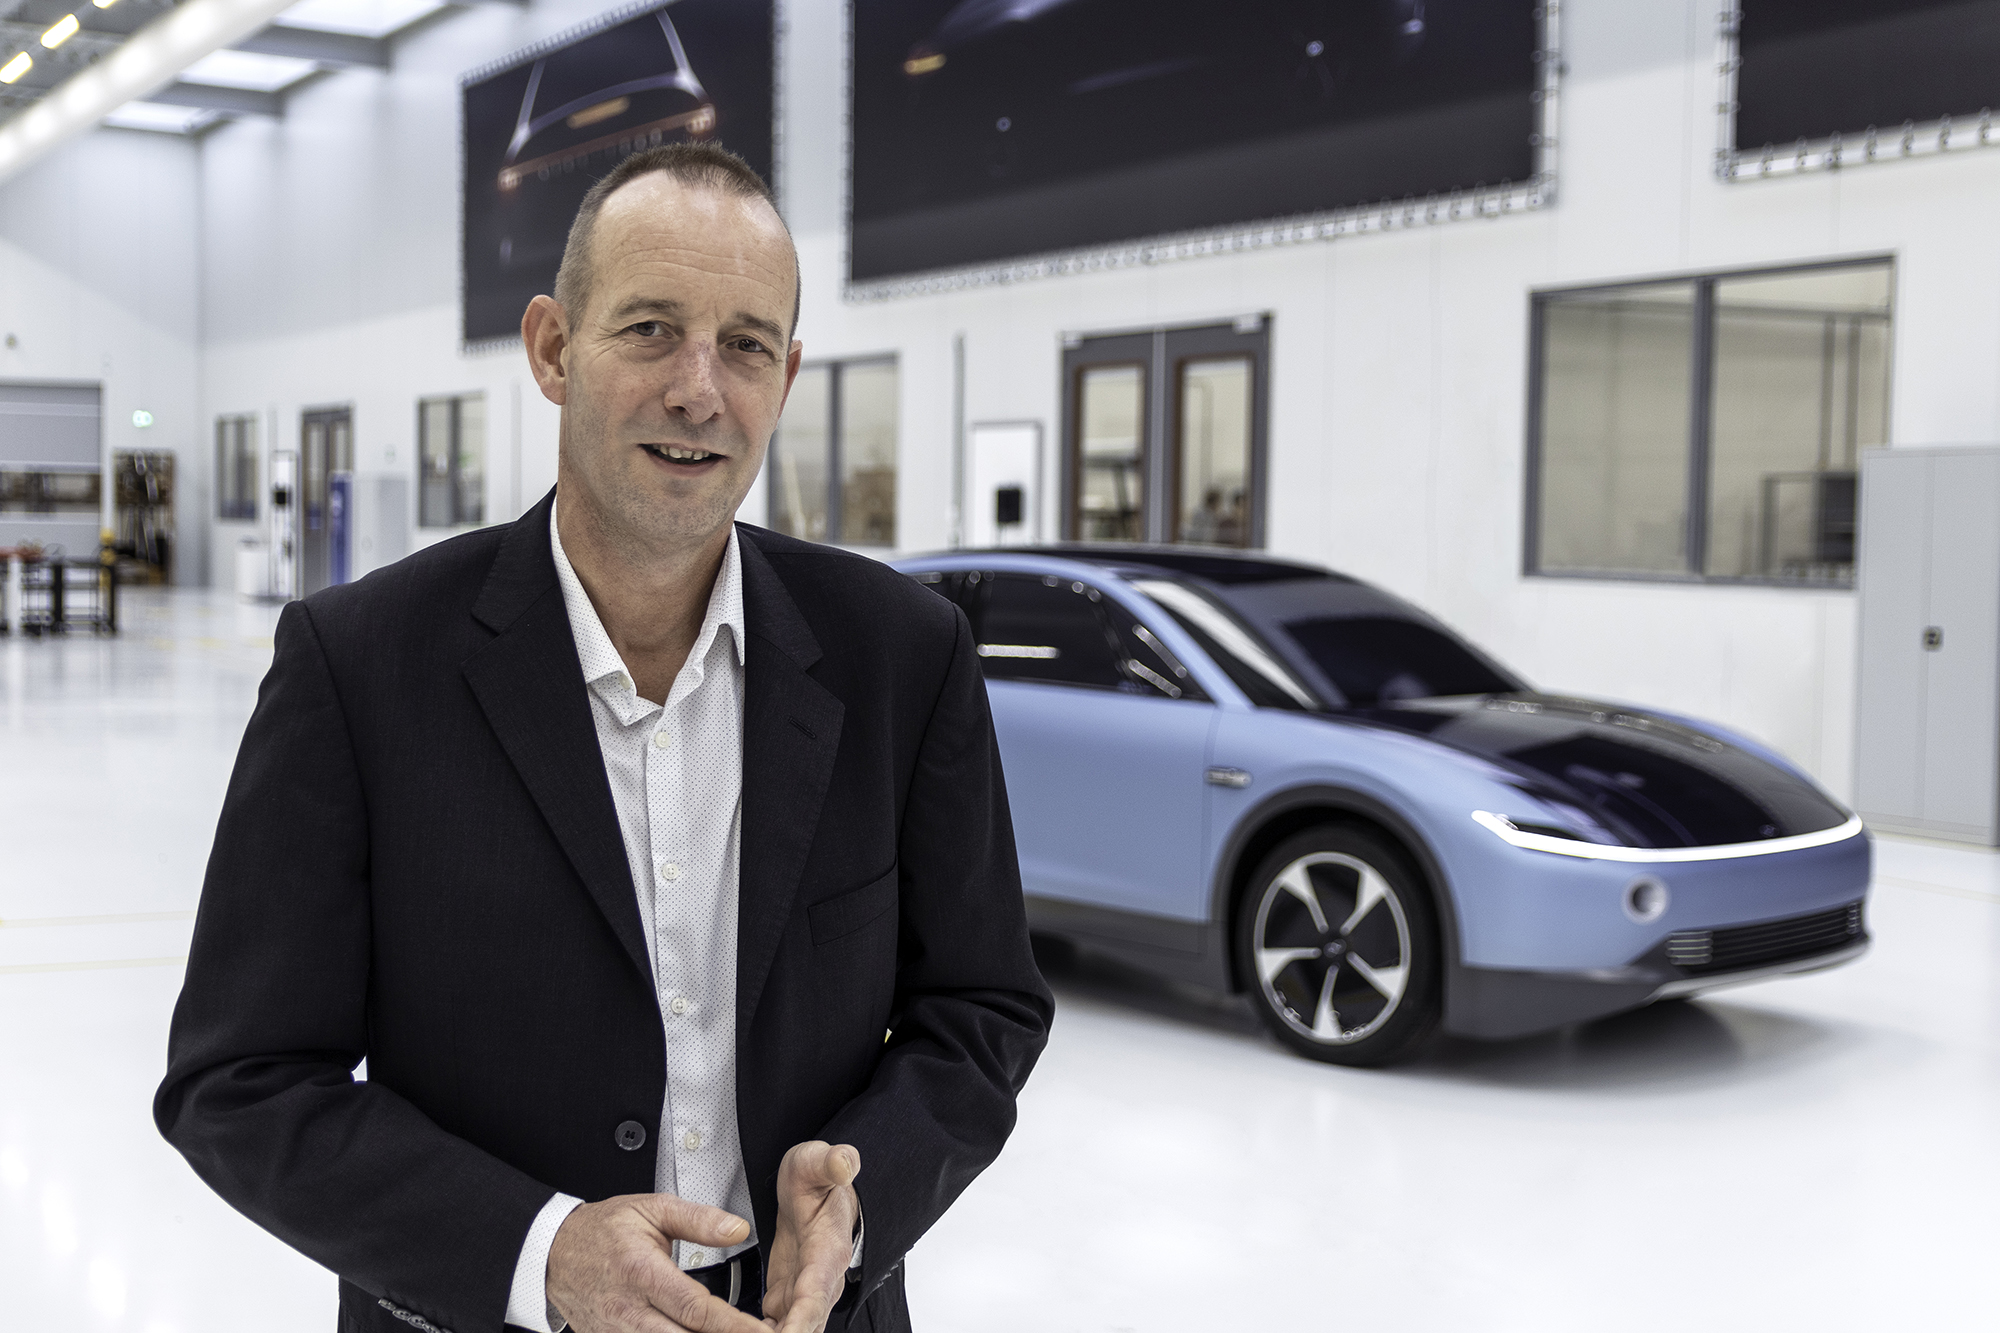 Lightyear welcomes former Tesla Senior Director Johan Vos to lead its commercial strategy towards scale